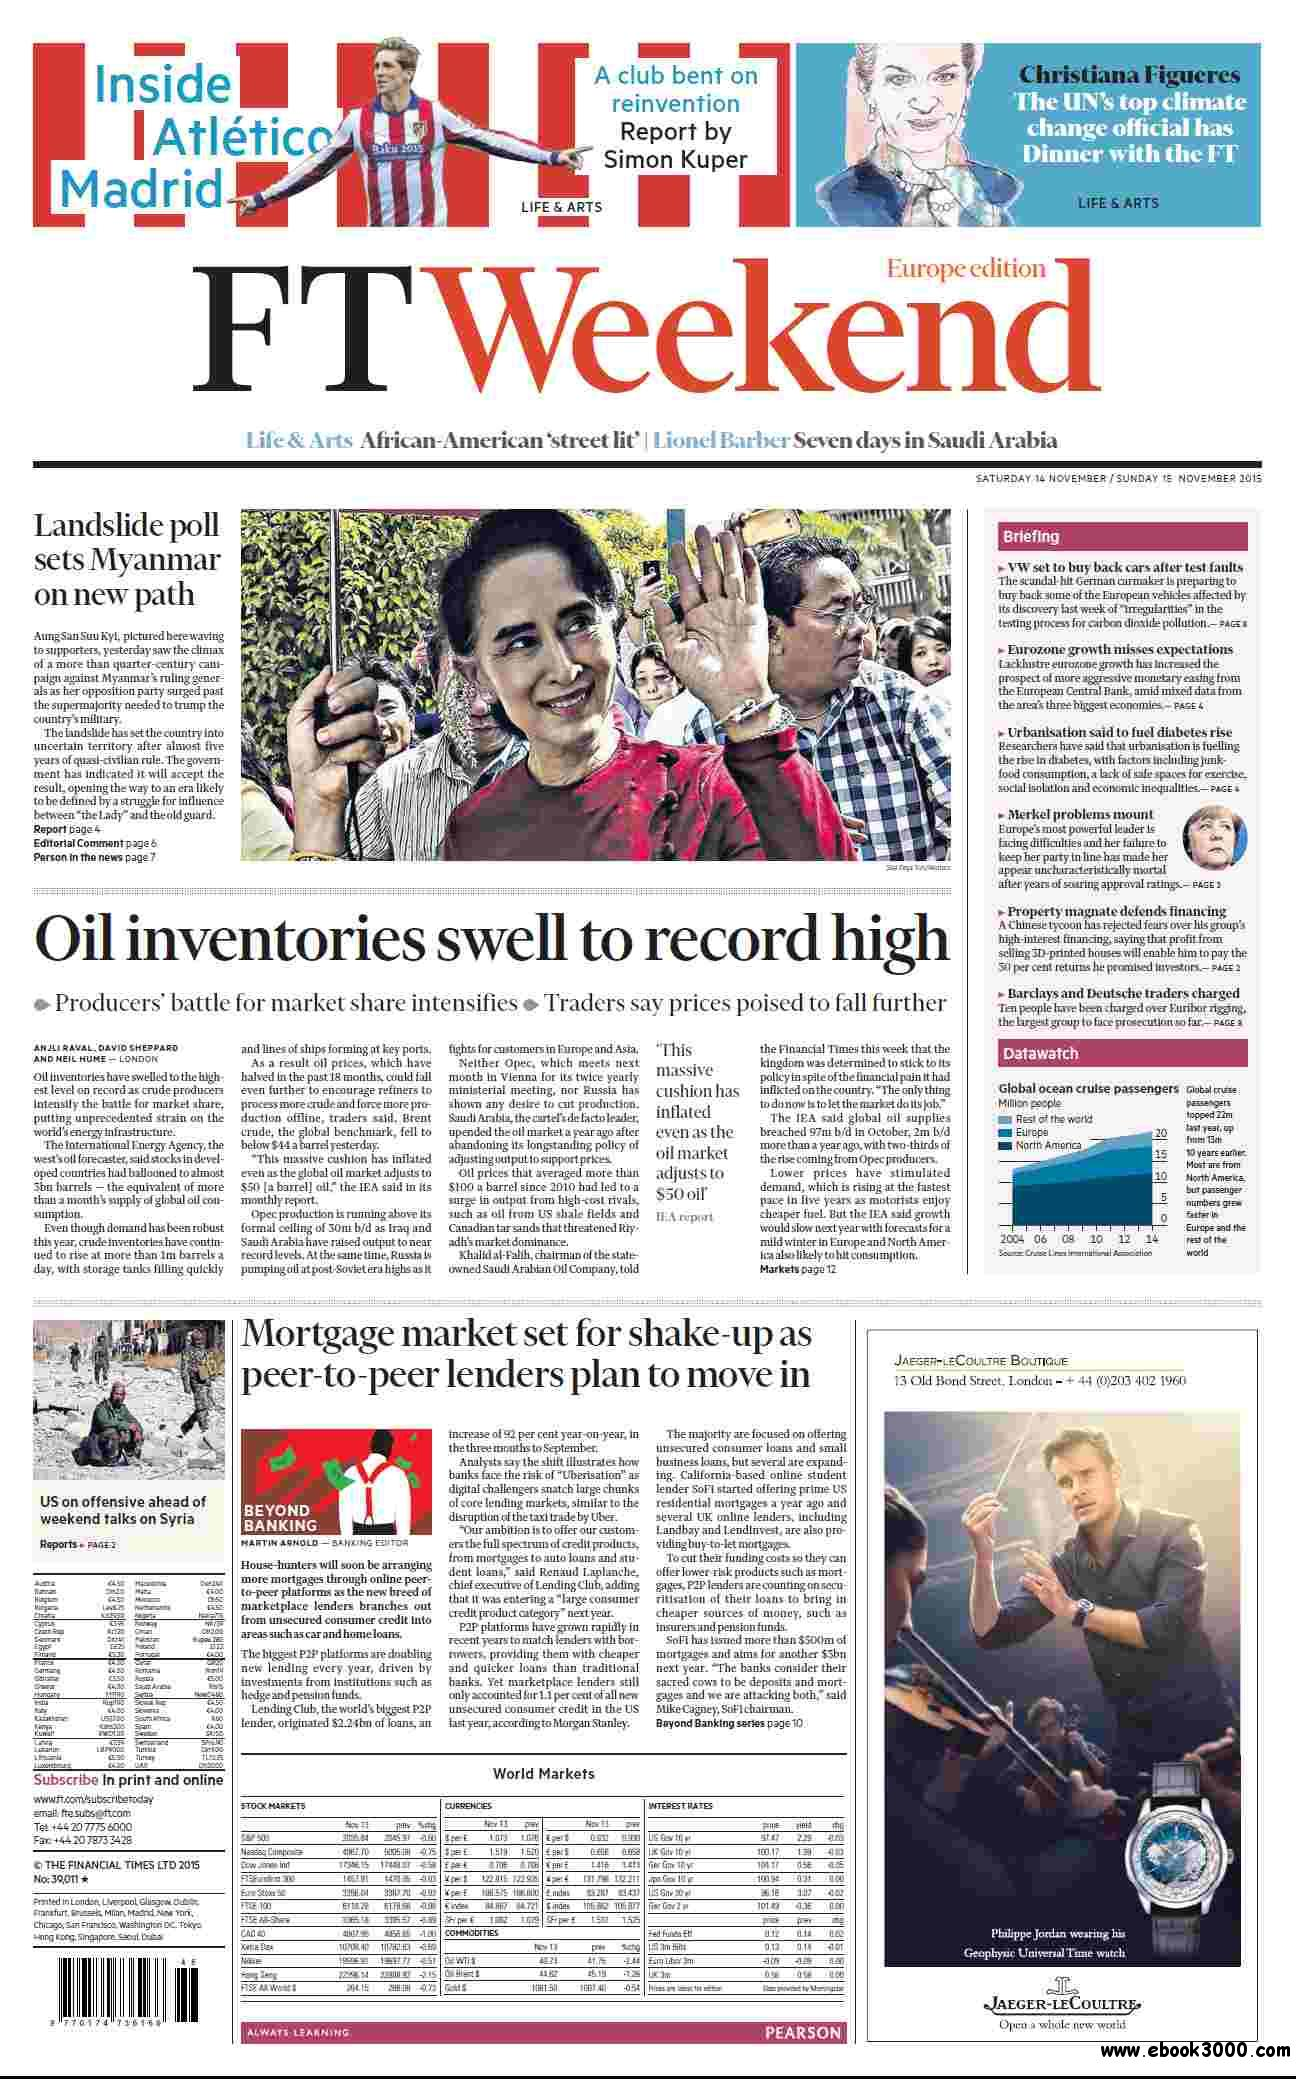 Financial times europe edition november 14 15 2015 free for Europe in november